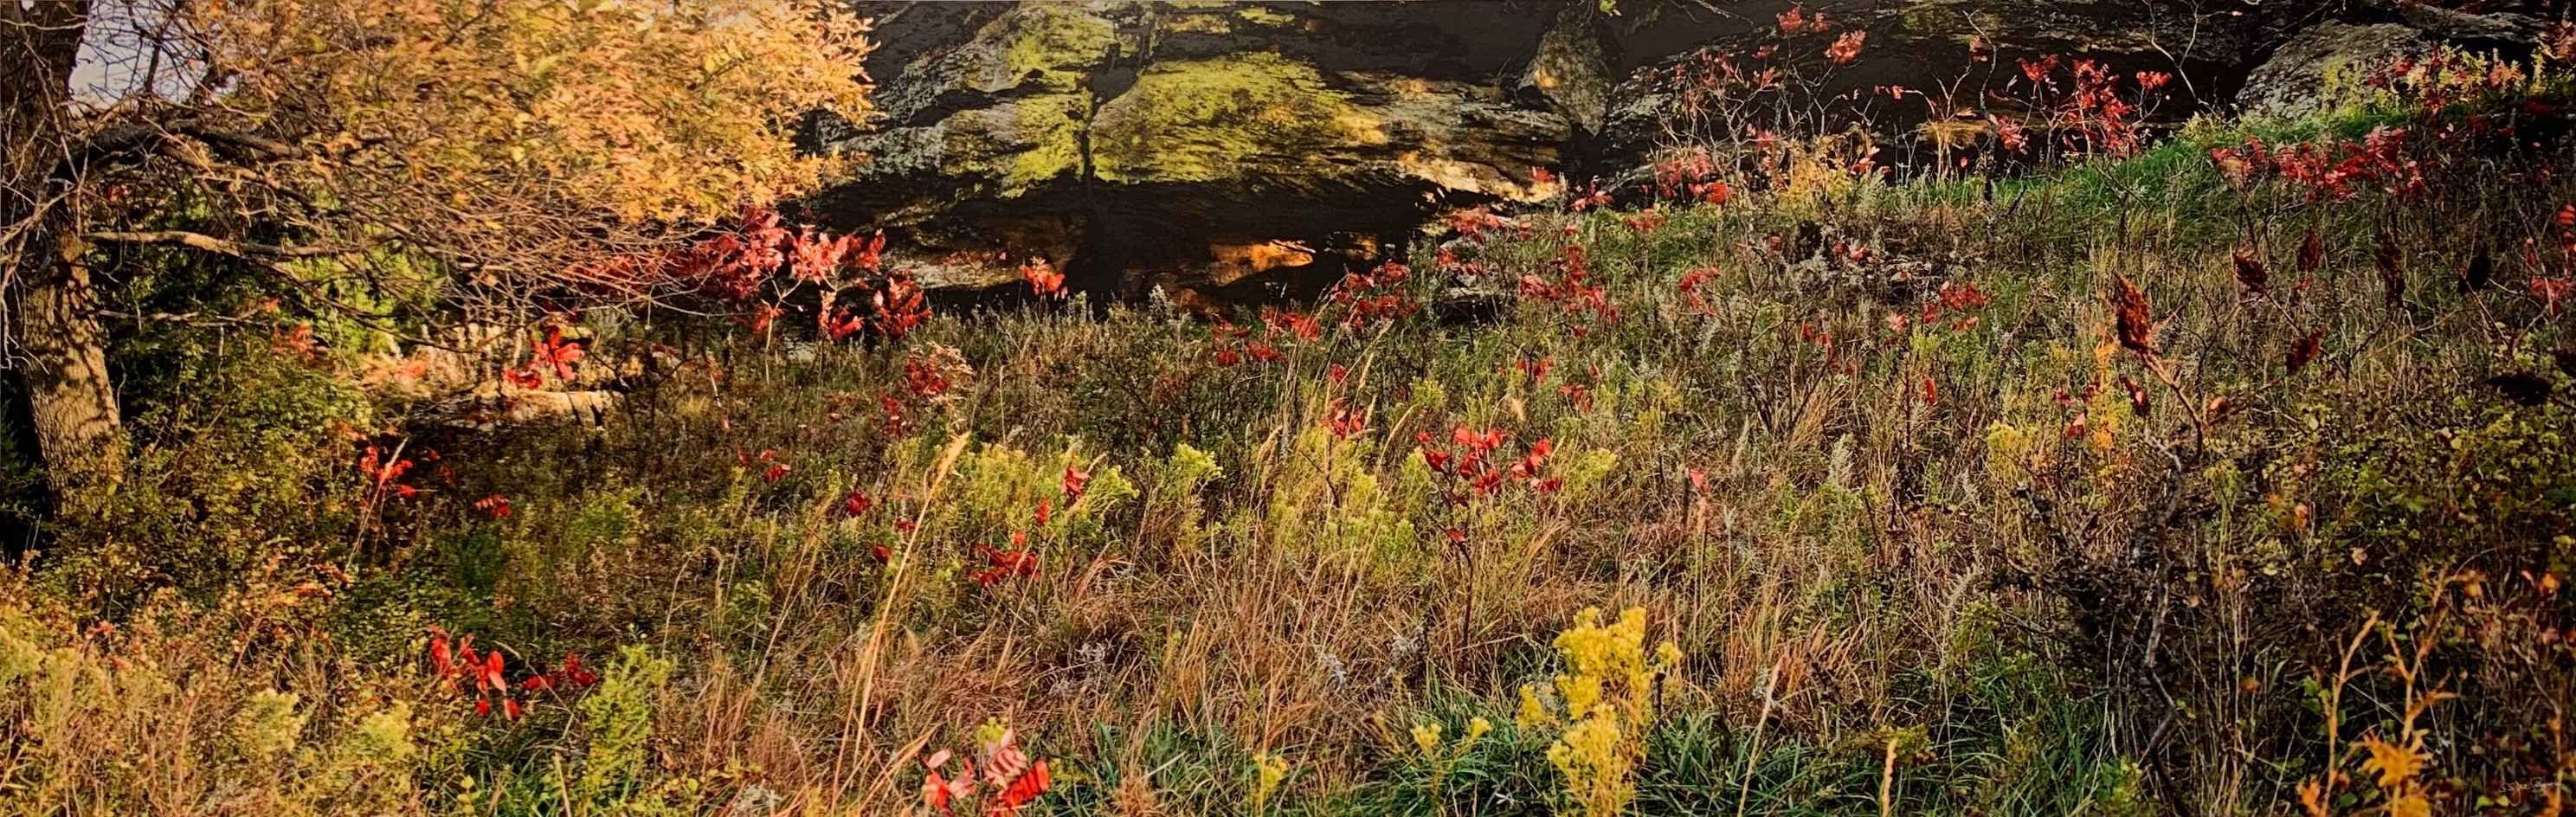 Sumac, Grasses, Outcr... by  George Jerkovich - Masterpiece Online